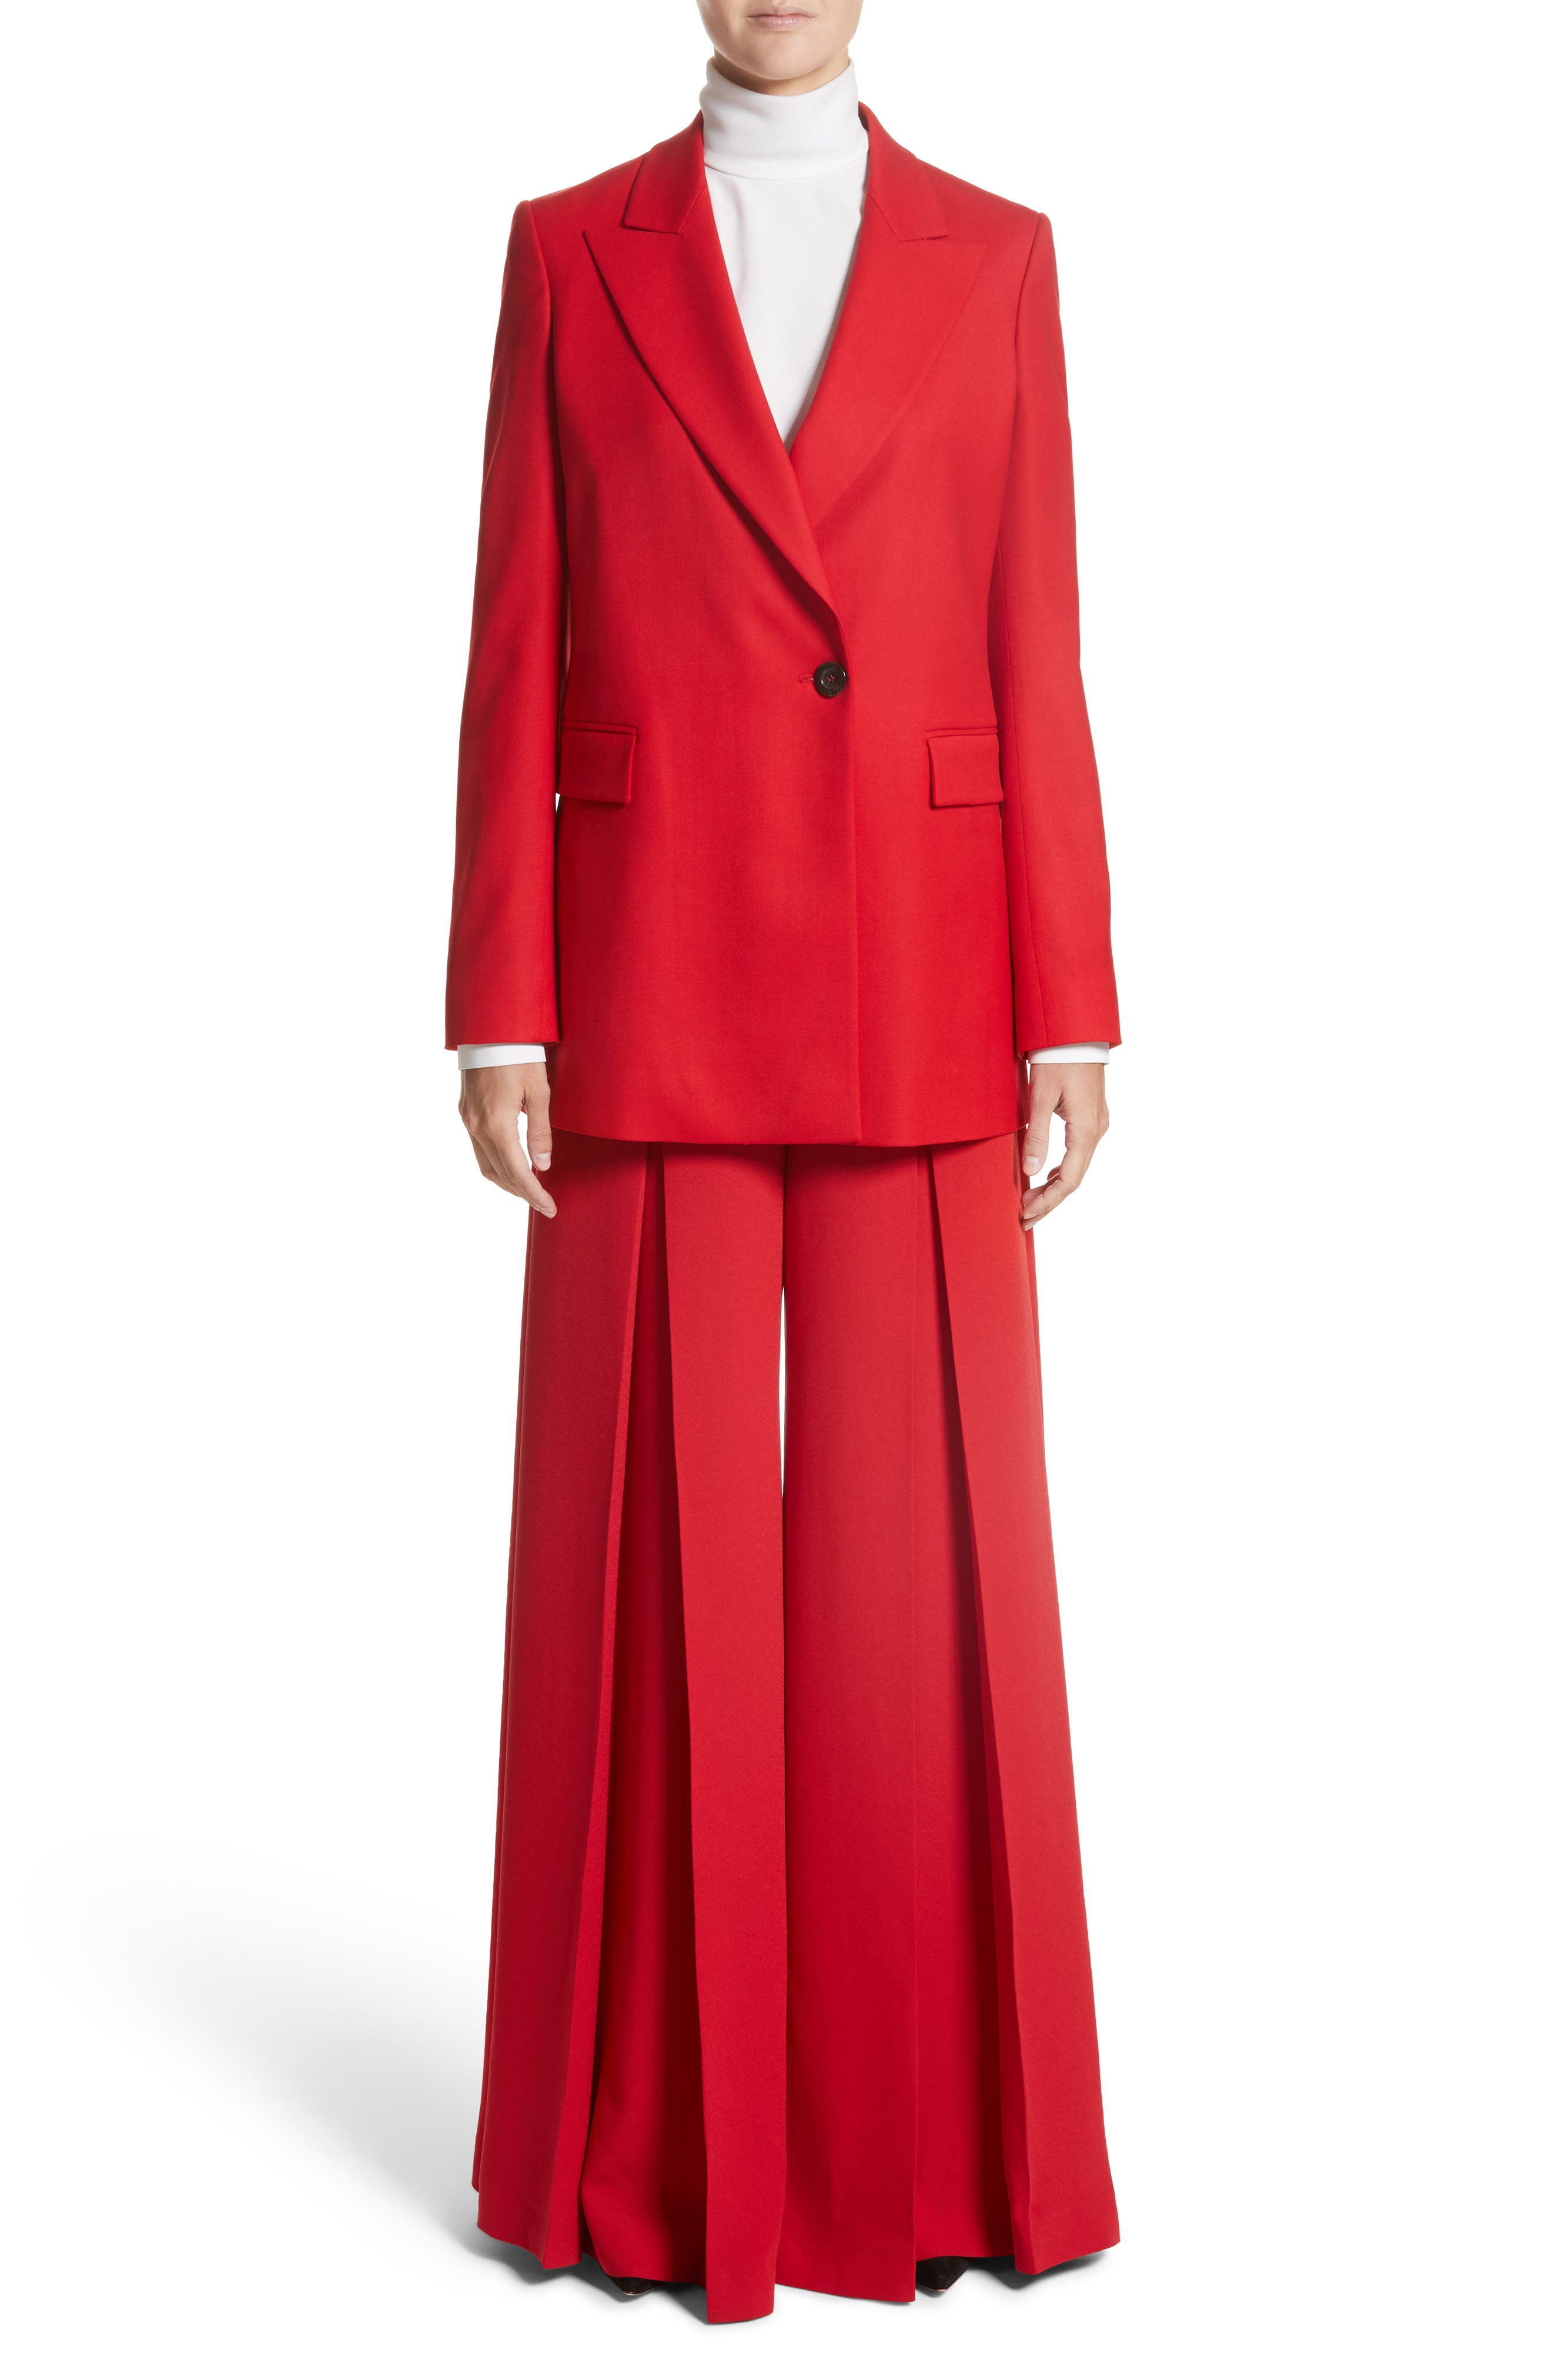 Stretch Wool Blazer,                             Alternate thumbnail 9, color,                             Red